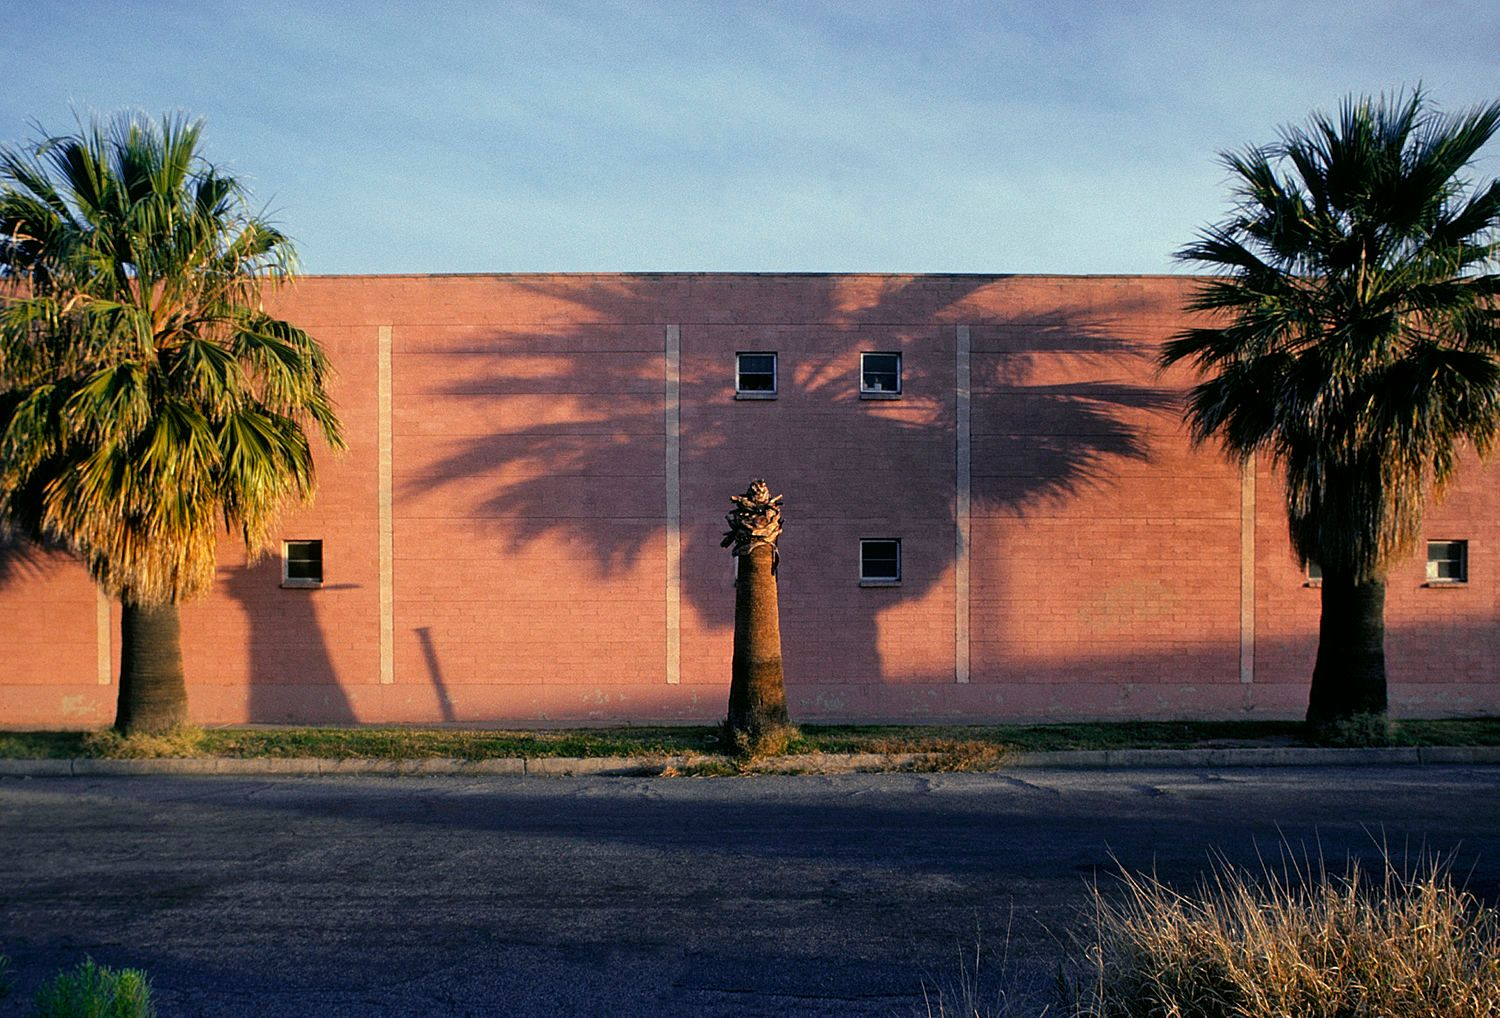 Palm Trees and Shadows